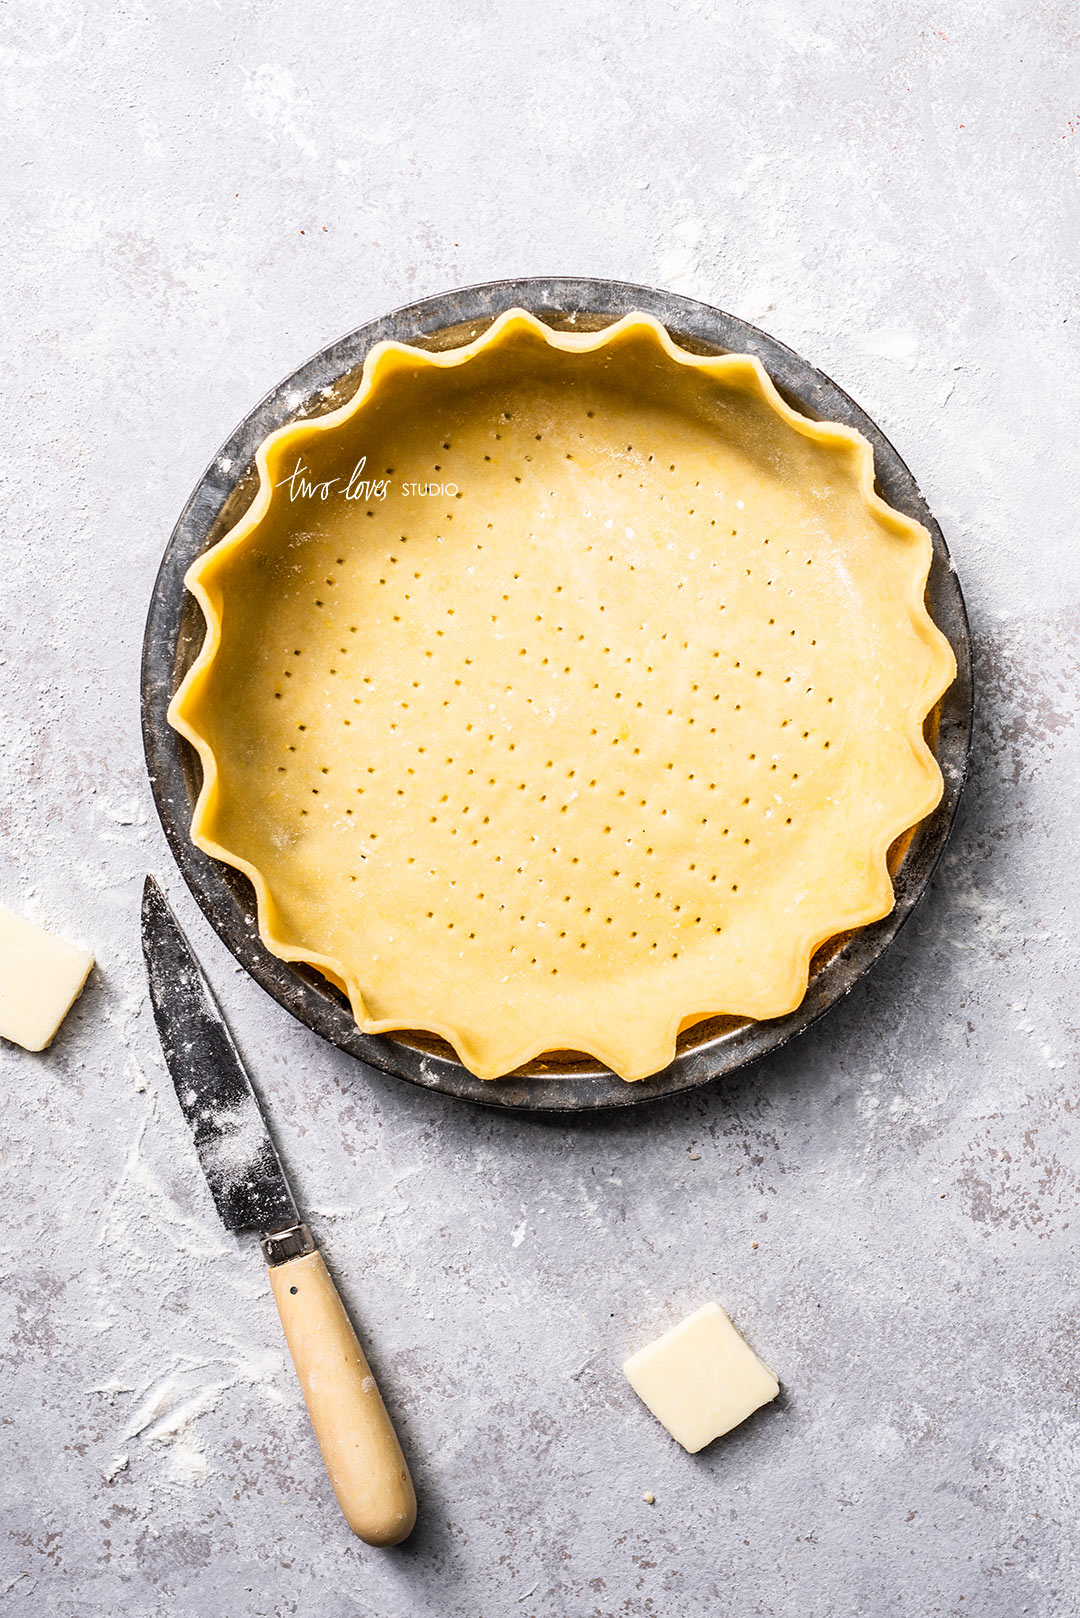 Create photo-worthy pie crust with this easy & beautiful pastry recipe. Get ready to shoot beautiful pies!